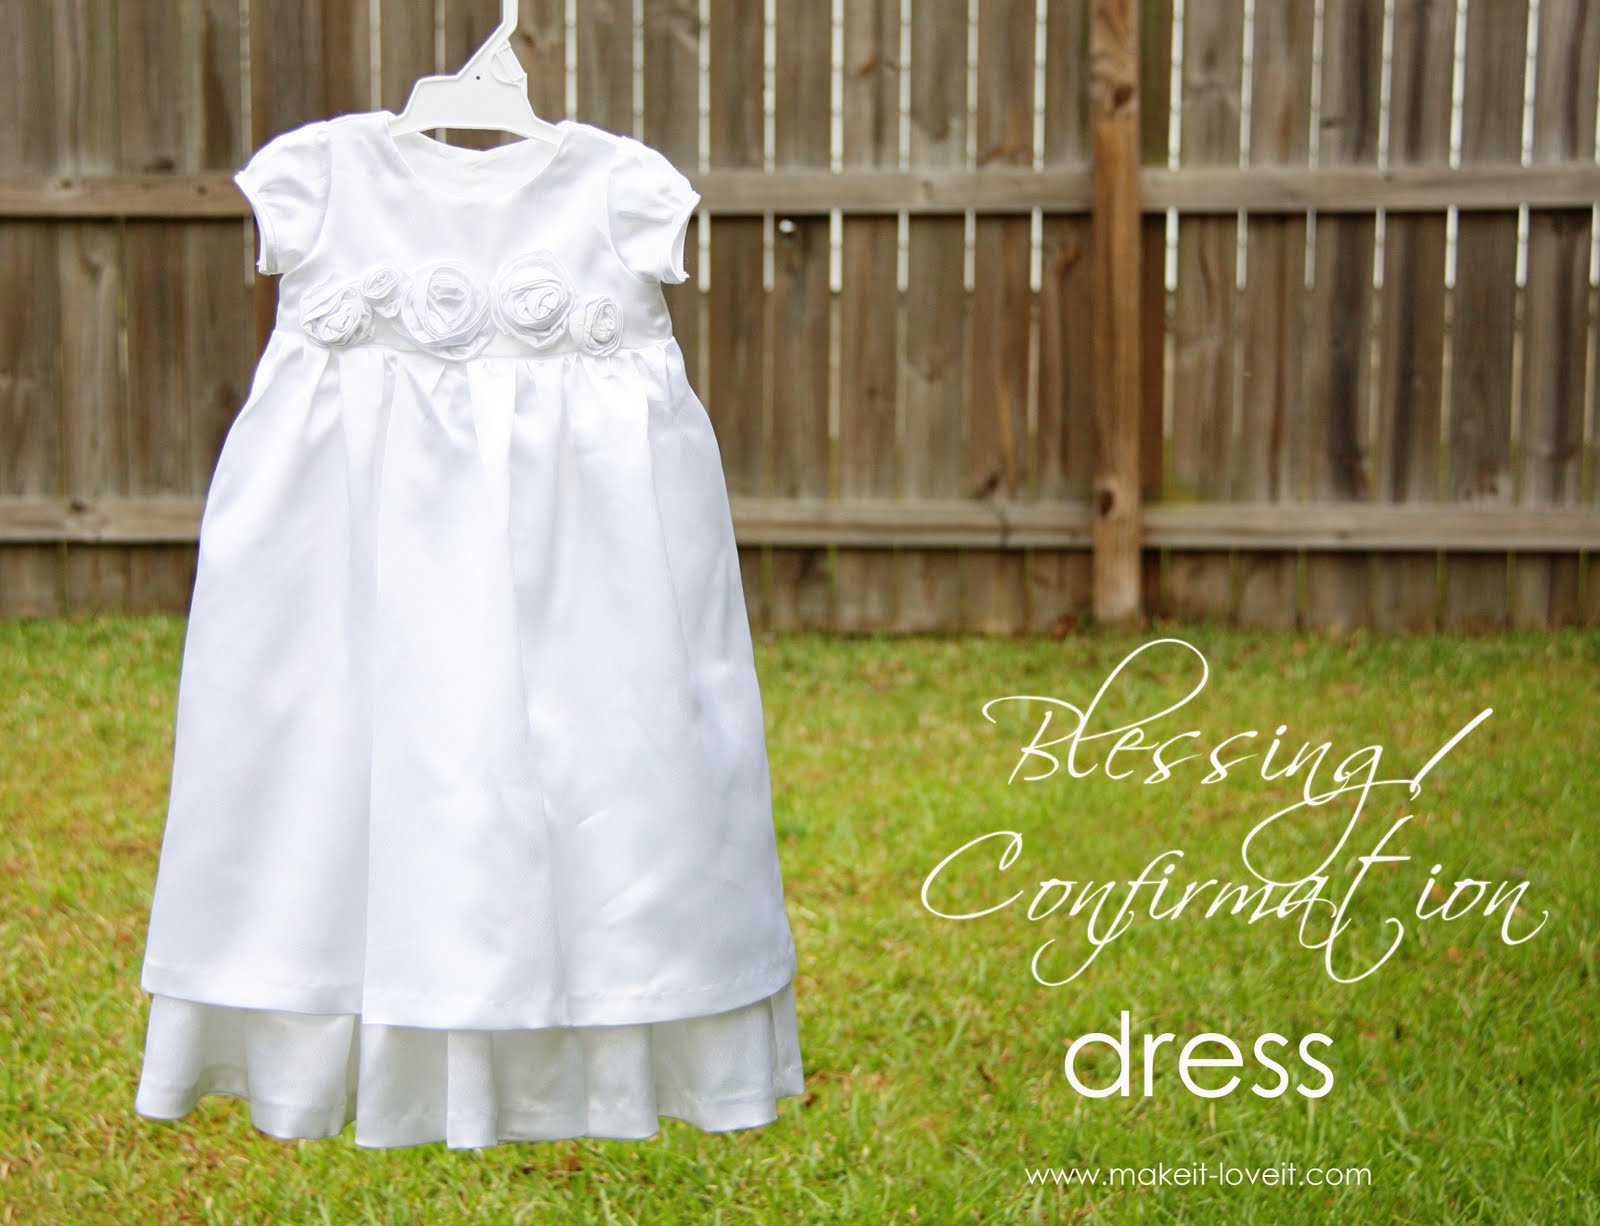 Blessing/Confirmation Dress – Make It and Love It